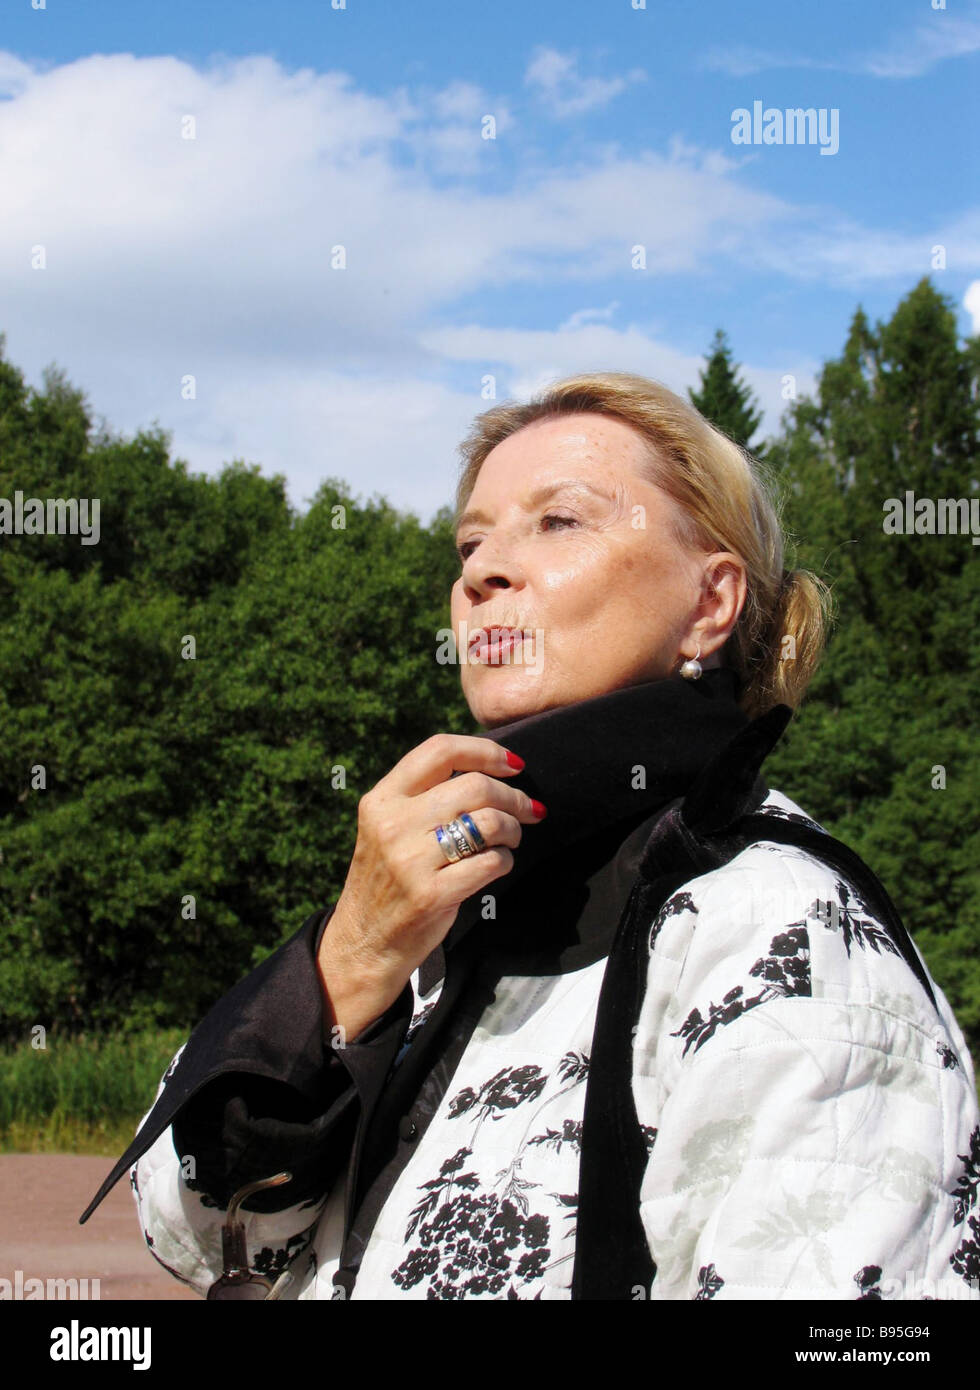 Actress Alla Demidova was admitted to the hospital 03/27/2015 29